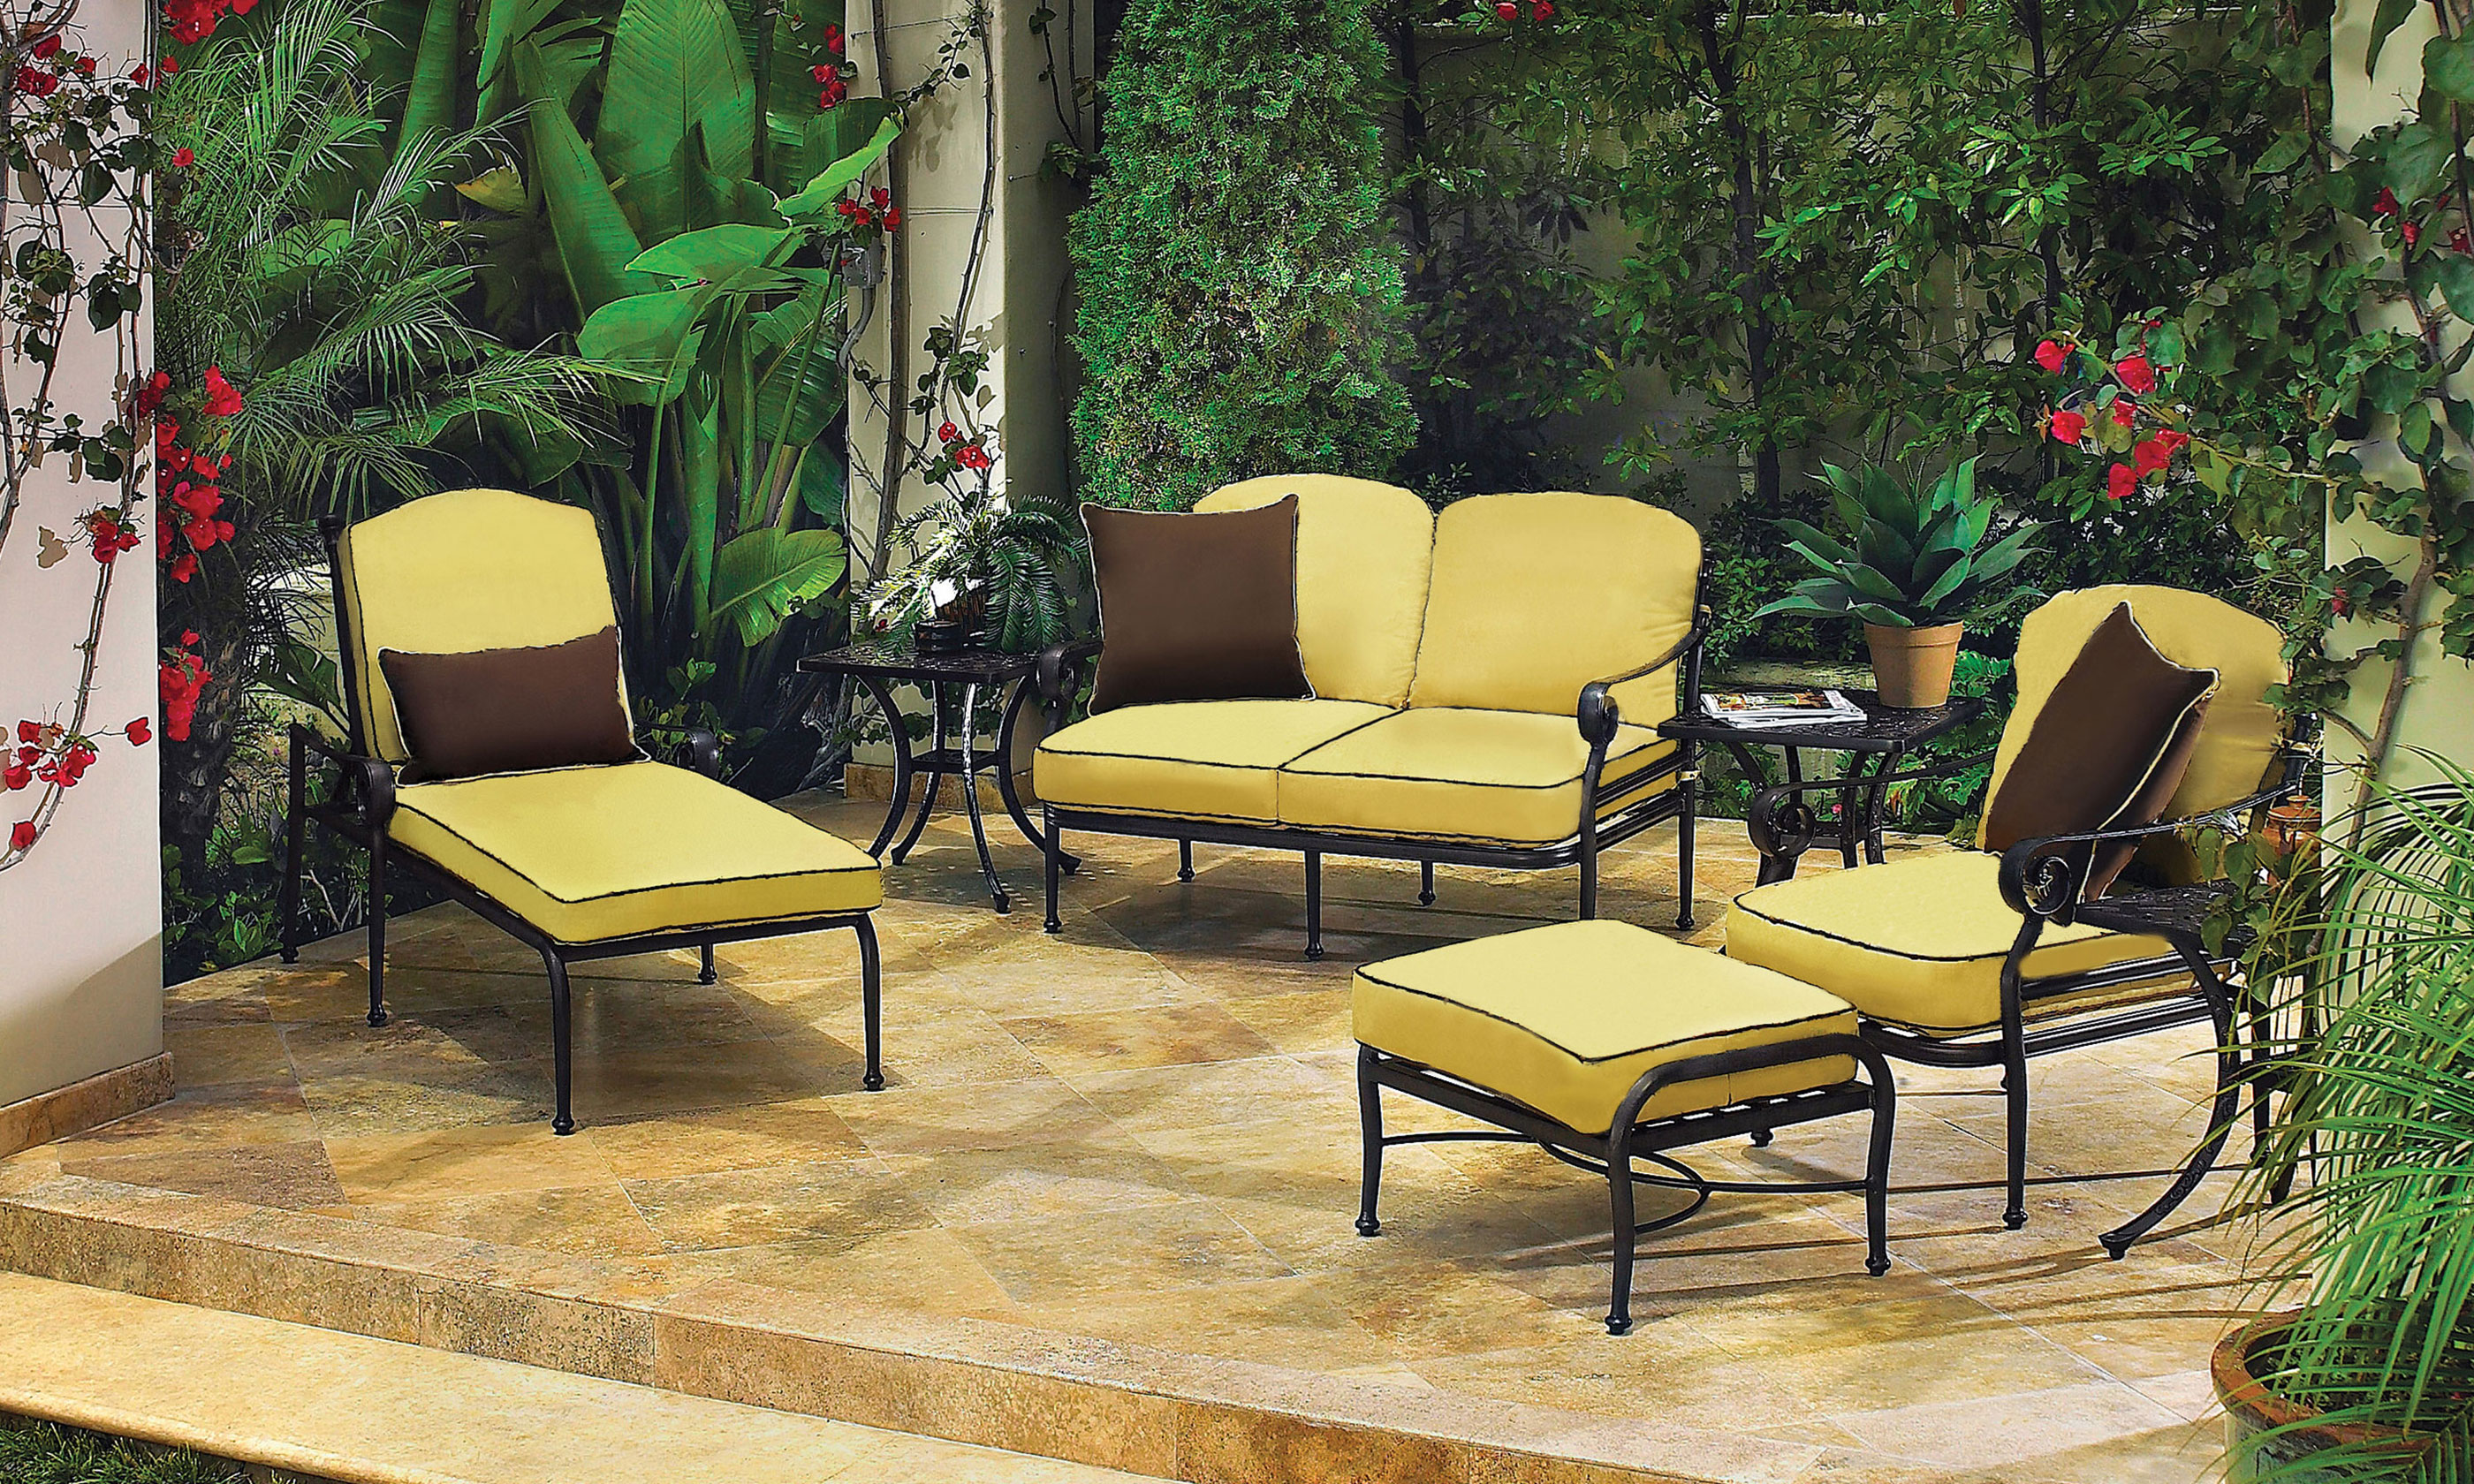 Superb Outdoor Furniture U003e Furniture Collections U003e Verona   Gensun